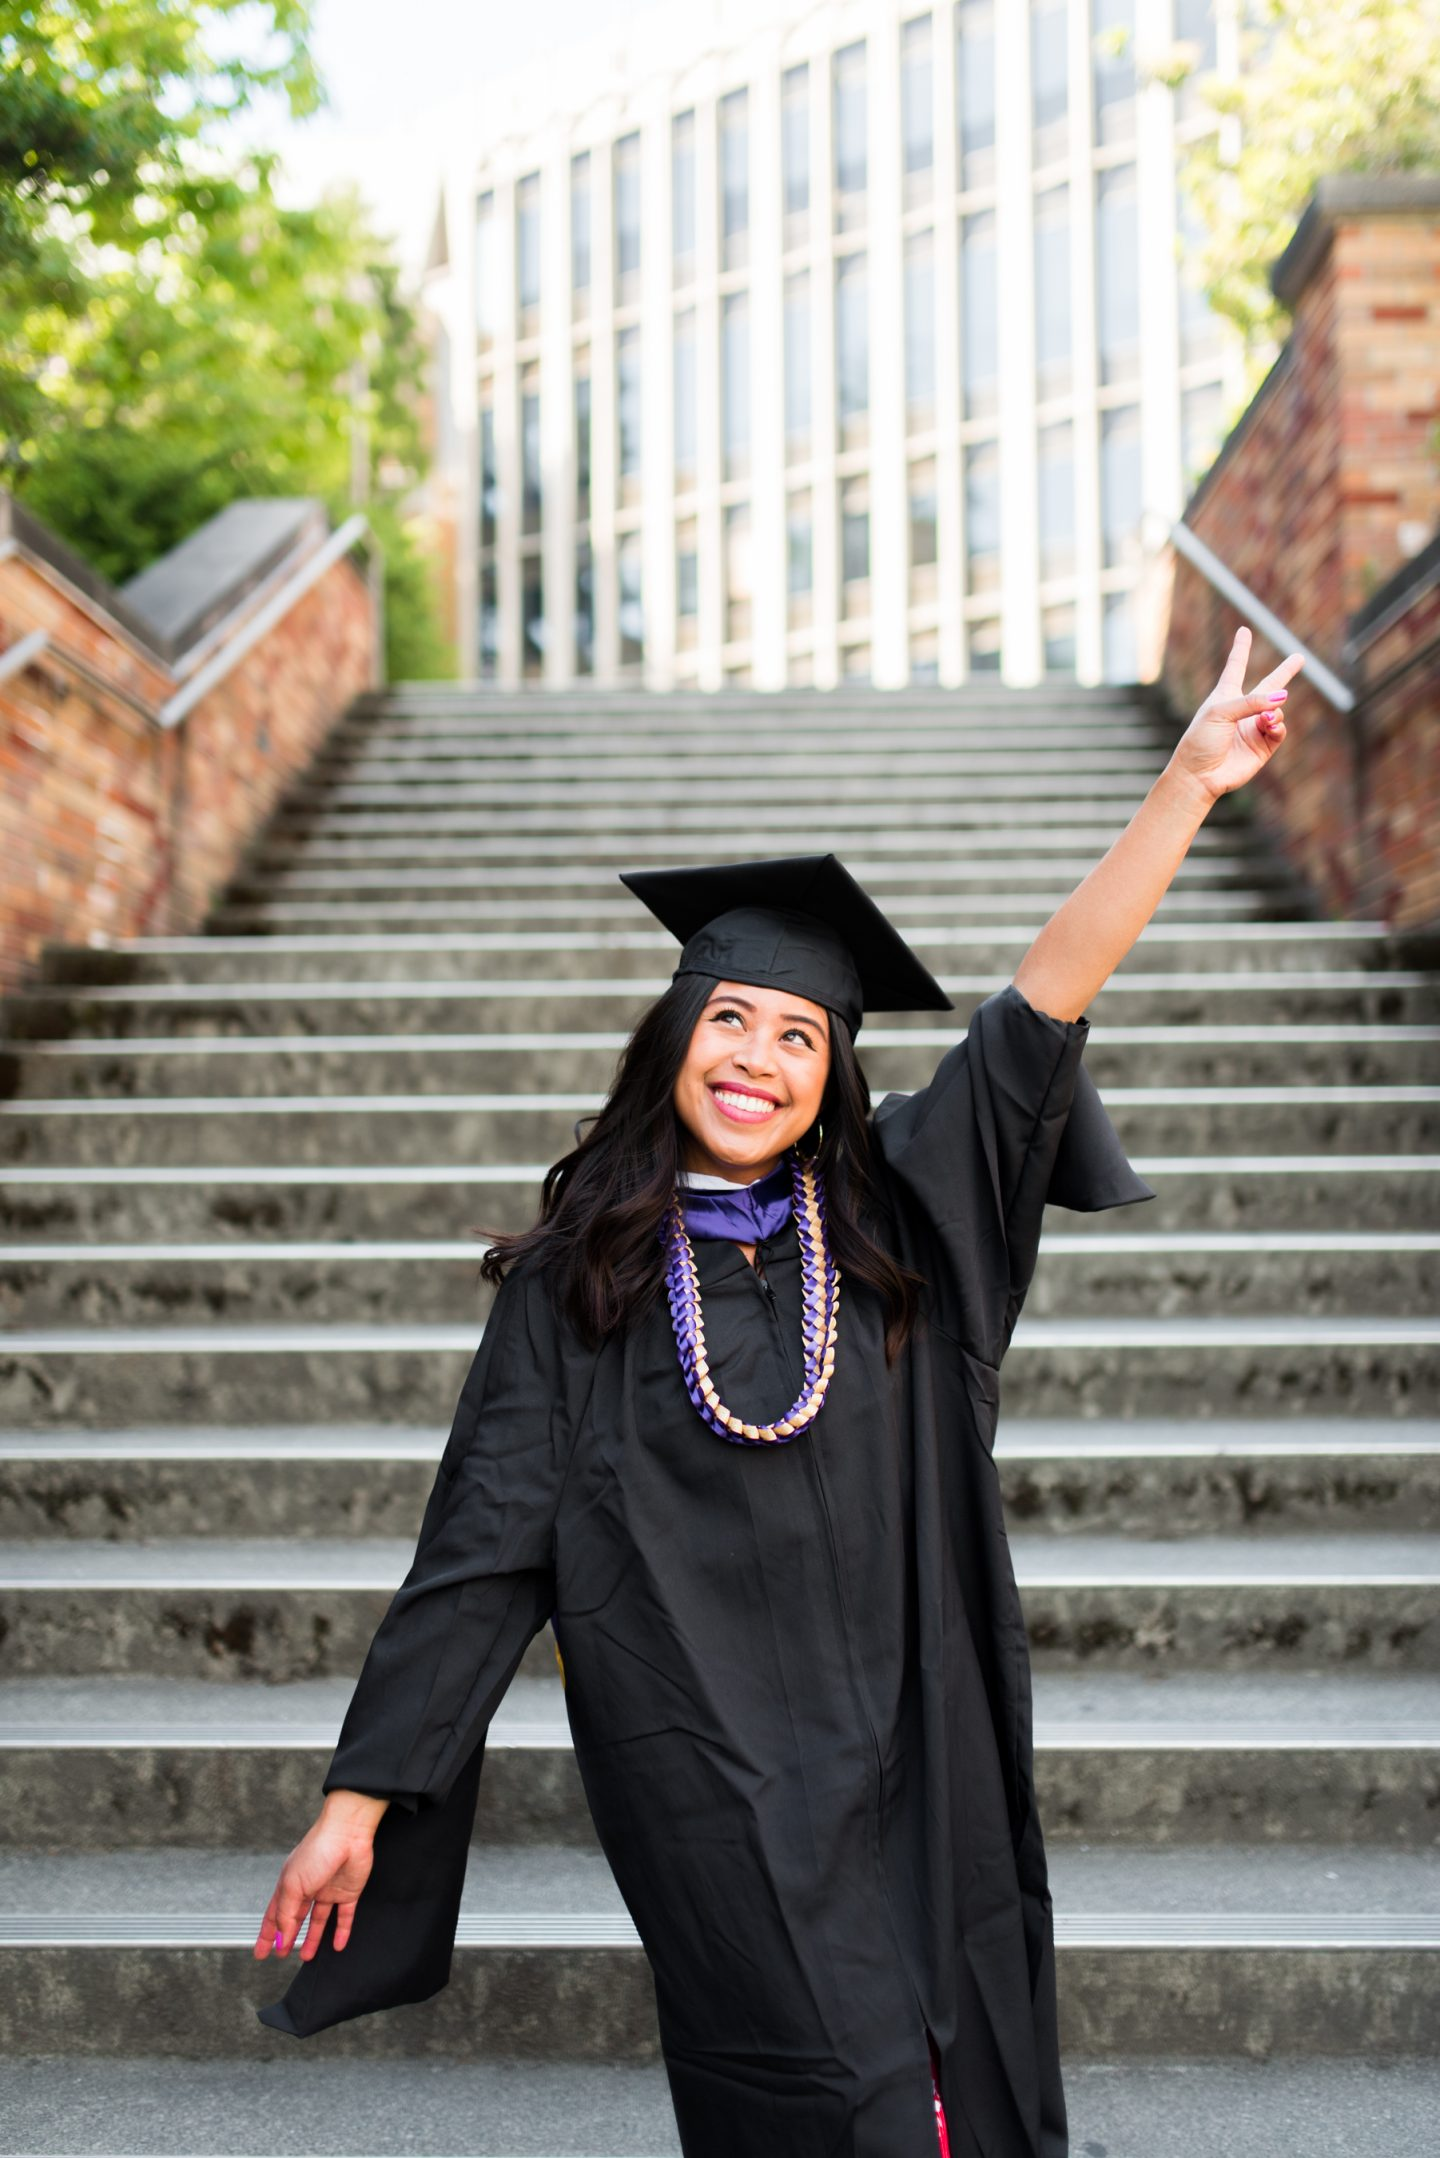 UW 2019 – UW Graduate – University of Washington – Class of 2019 – Masters